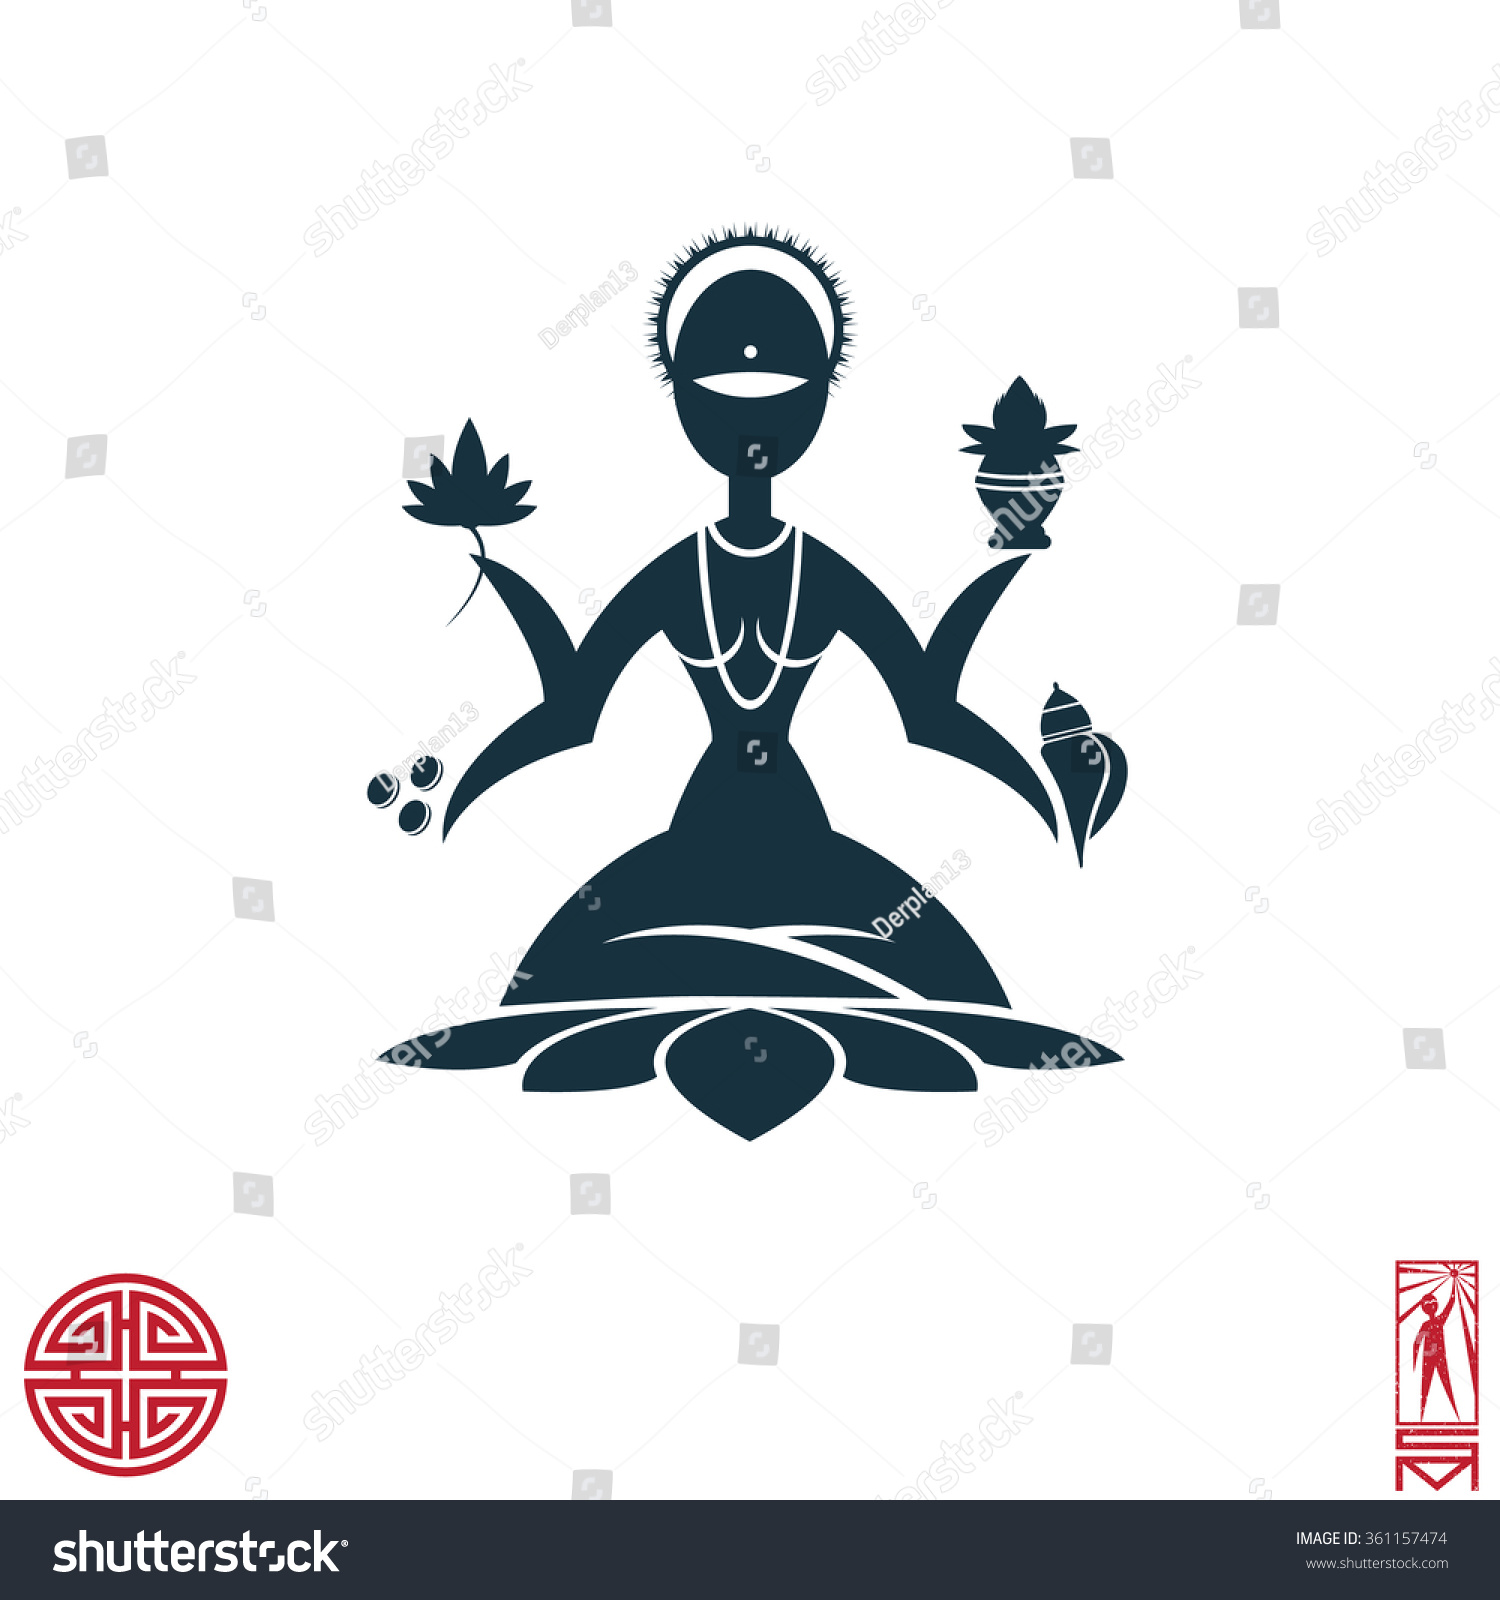 Person basic body position stick figure stock vector 361157474 person basic body position stick figure icon silhouette vector signfeng shui china buycottarizona